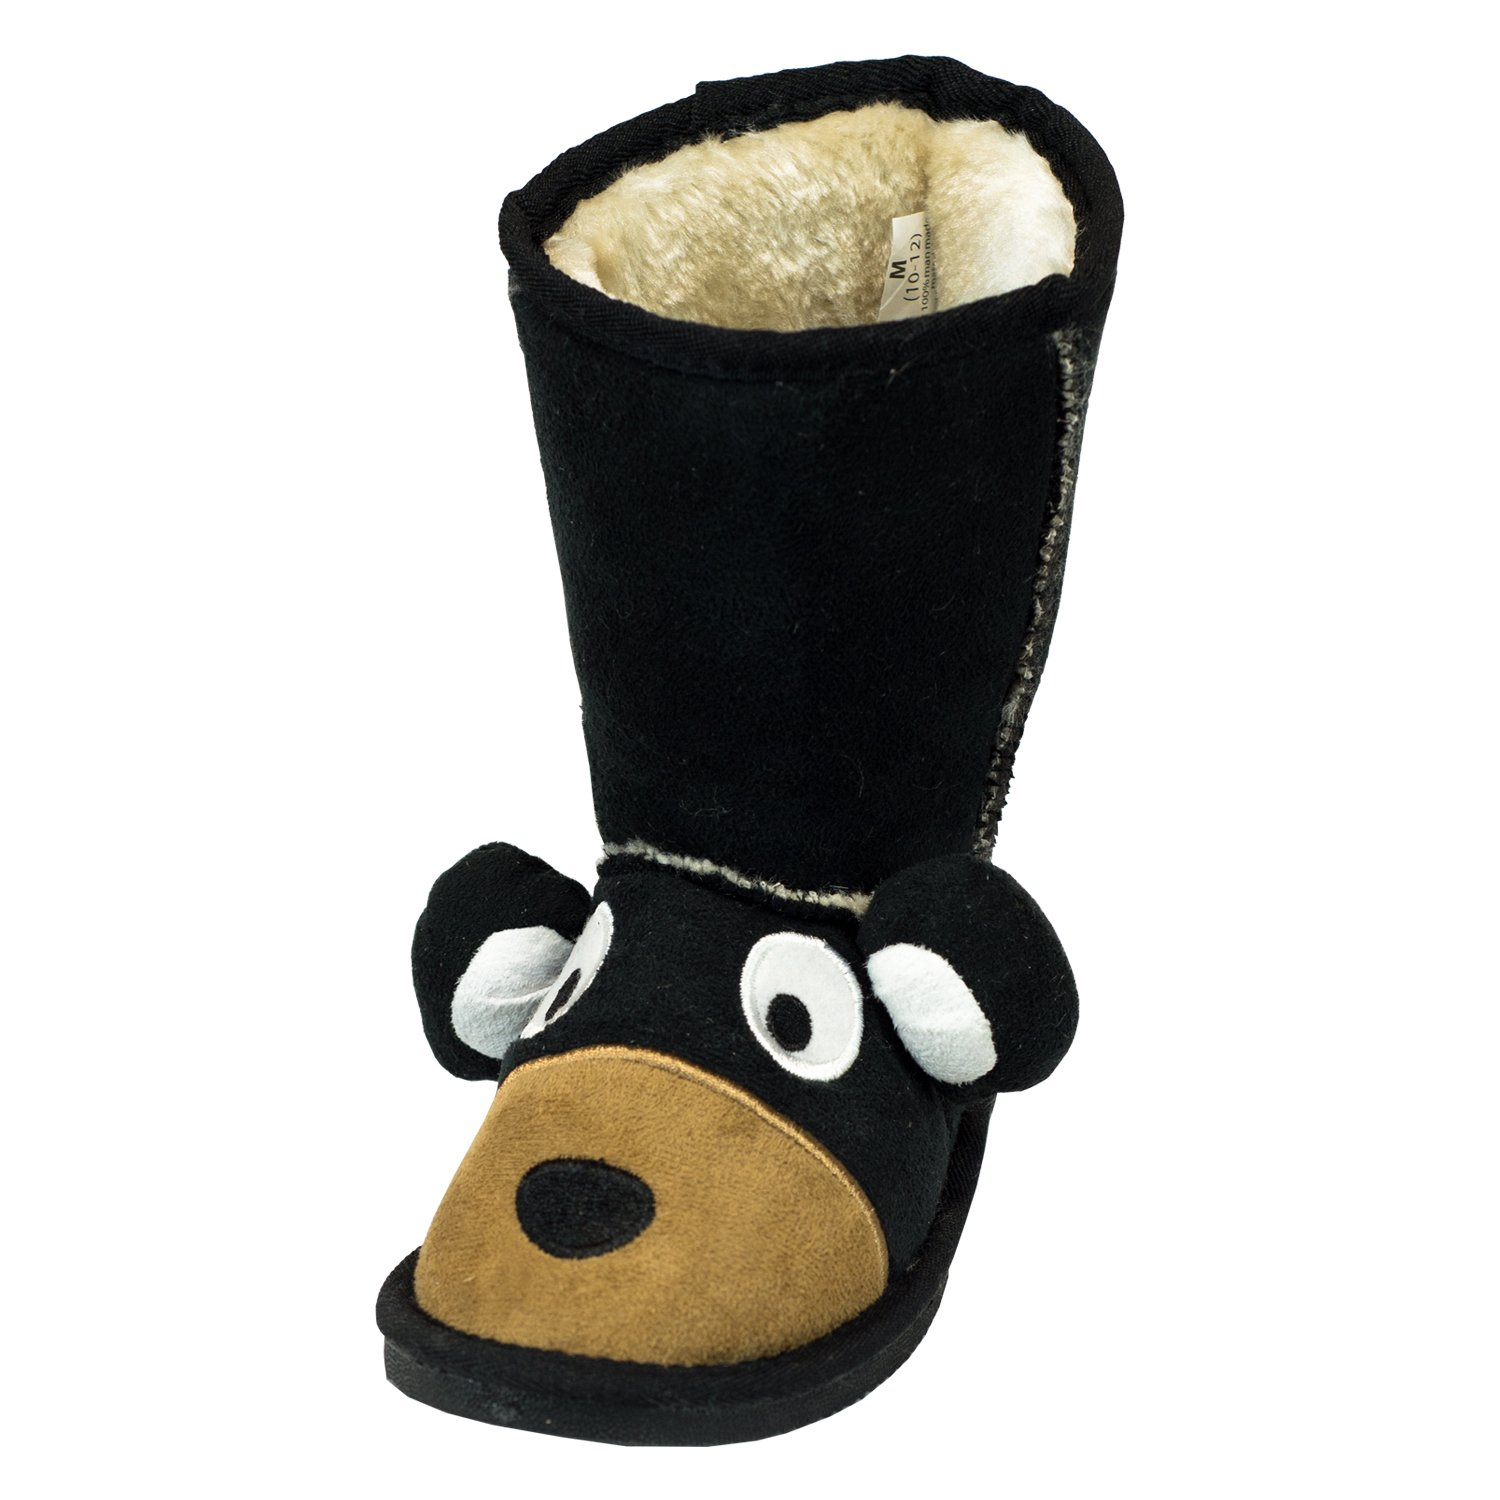 Bear Boot Cute Animal Character Slippers for Kids by LazyOne | Boys and Girls Creature Slipper Boots (Medium)